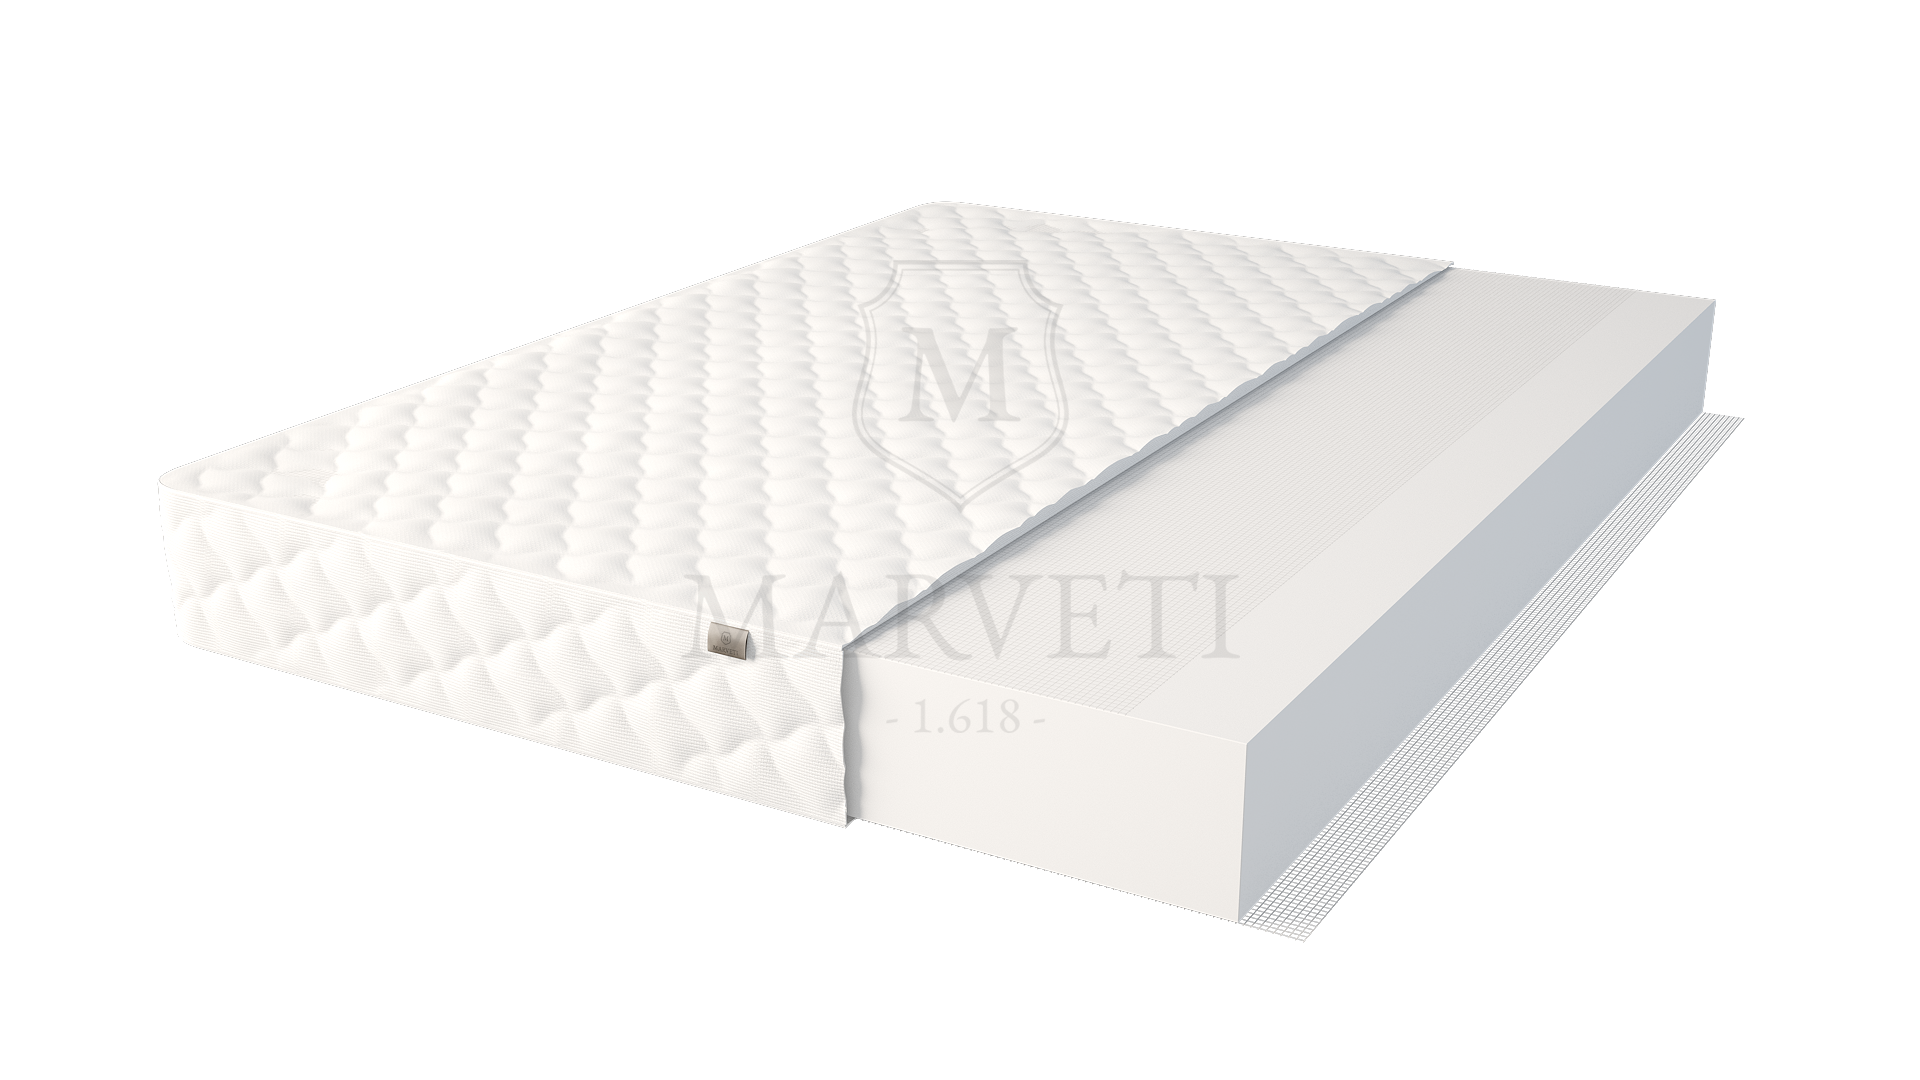 MARVETI Foam fabric